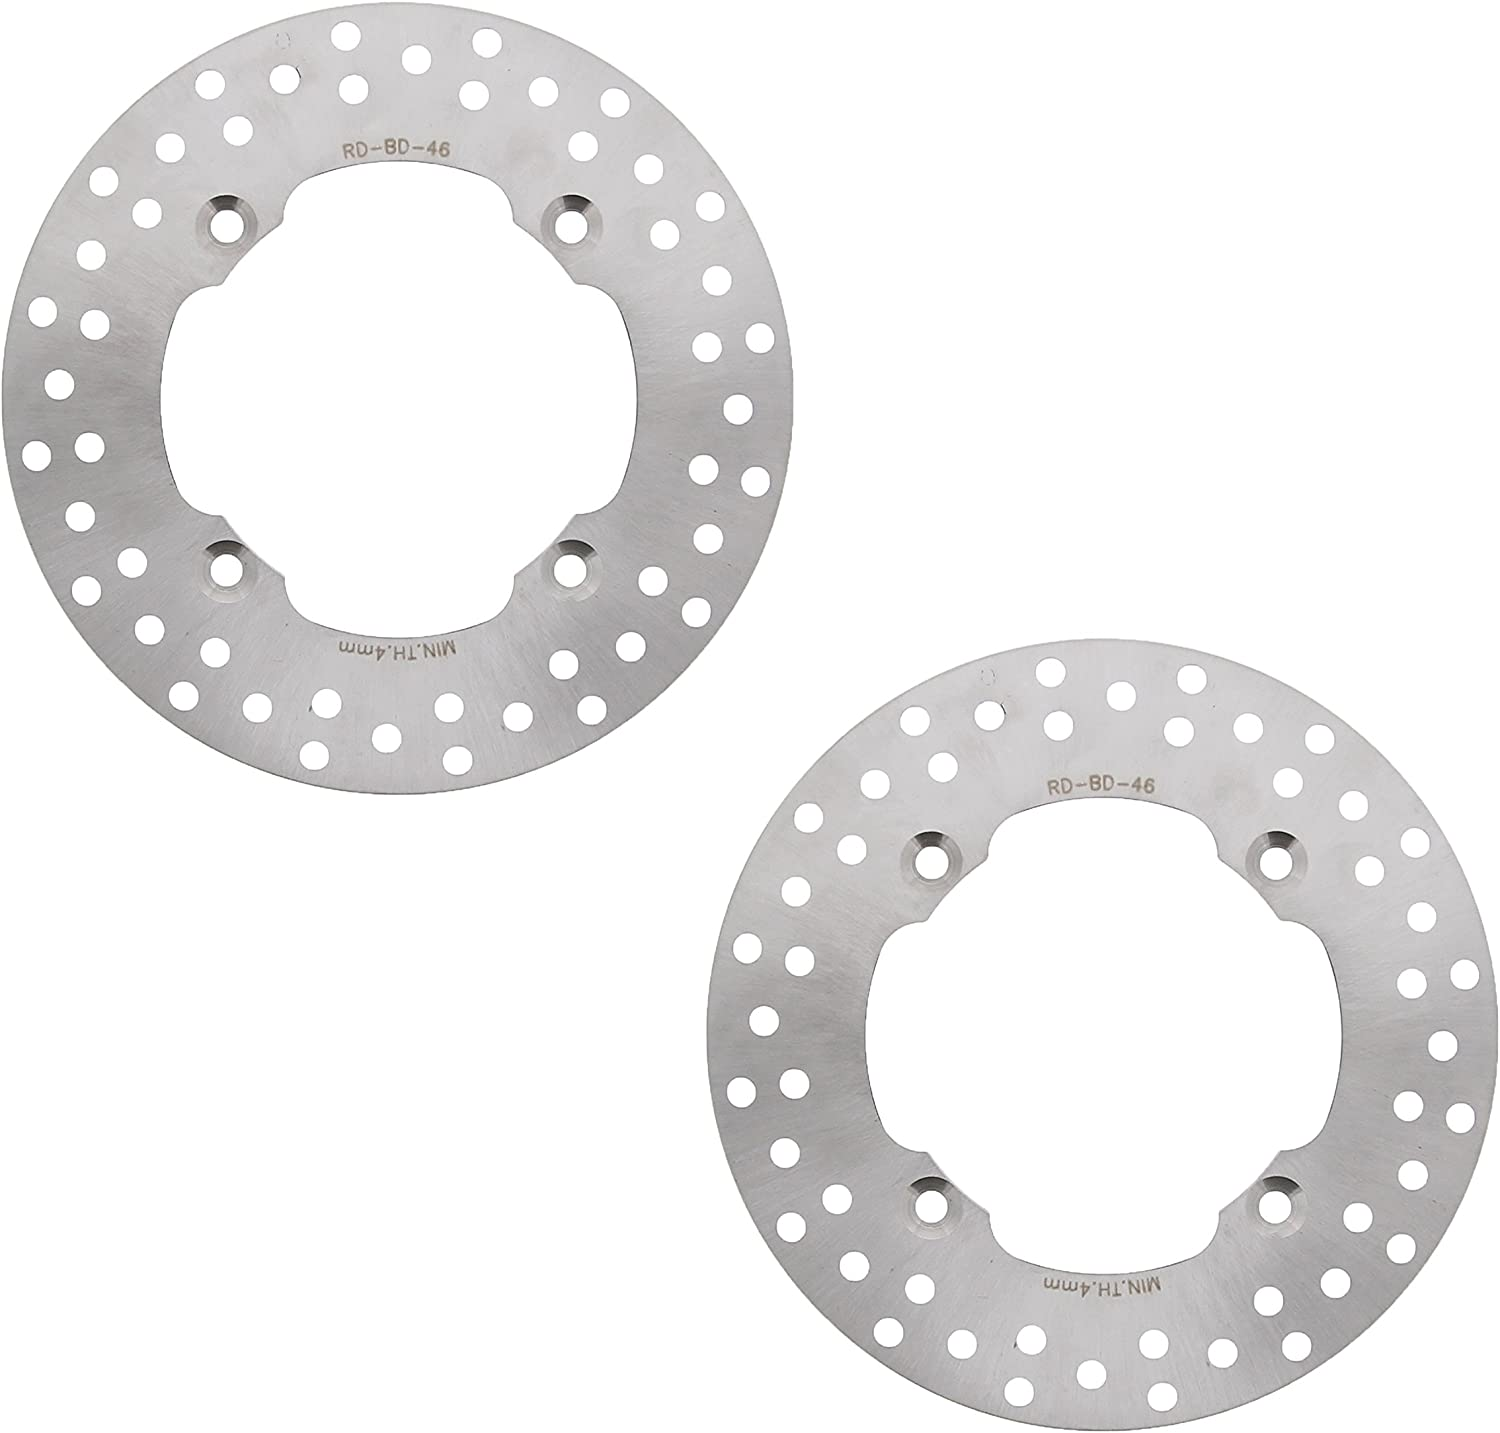 2014 2015 2016 fits Can-Am Maverick Max 1000R 4x4 Front Brake Rotors Discs X2